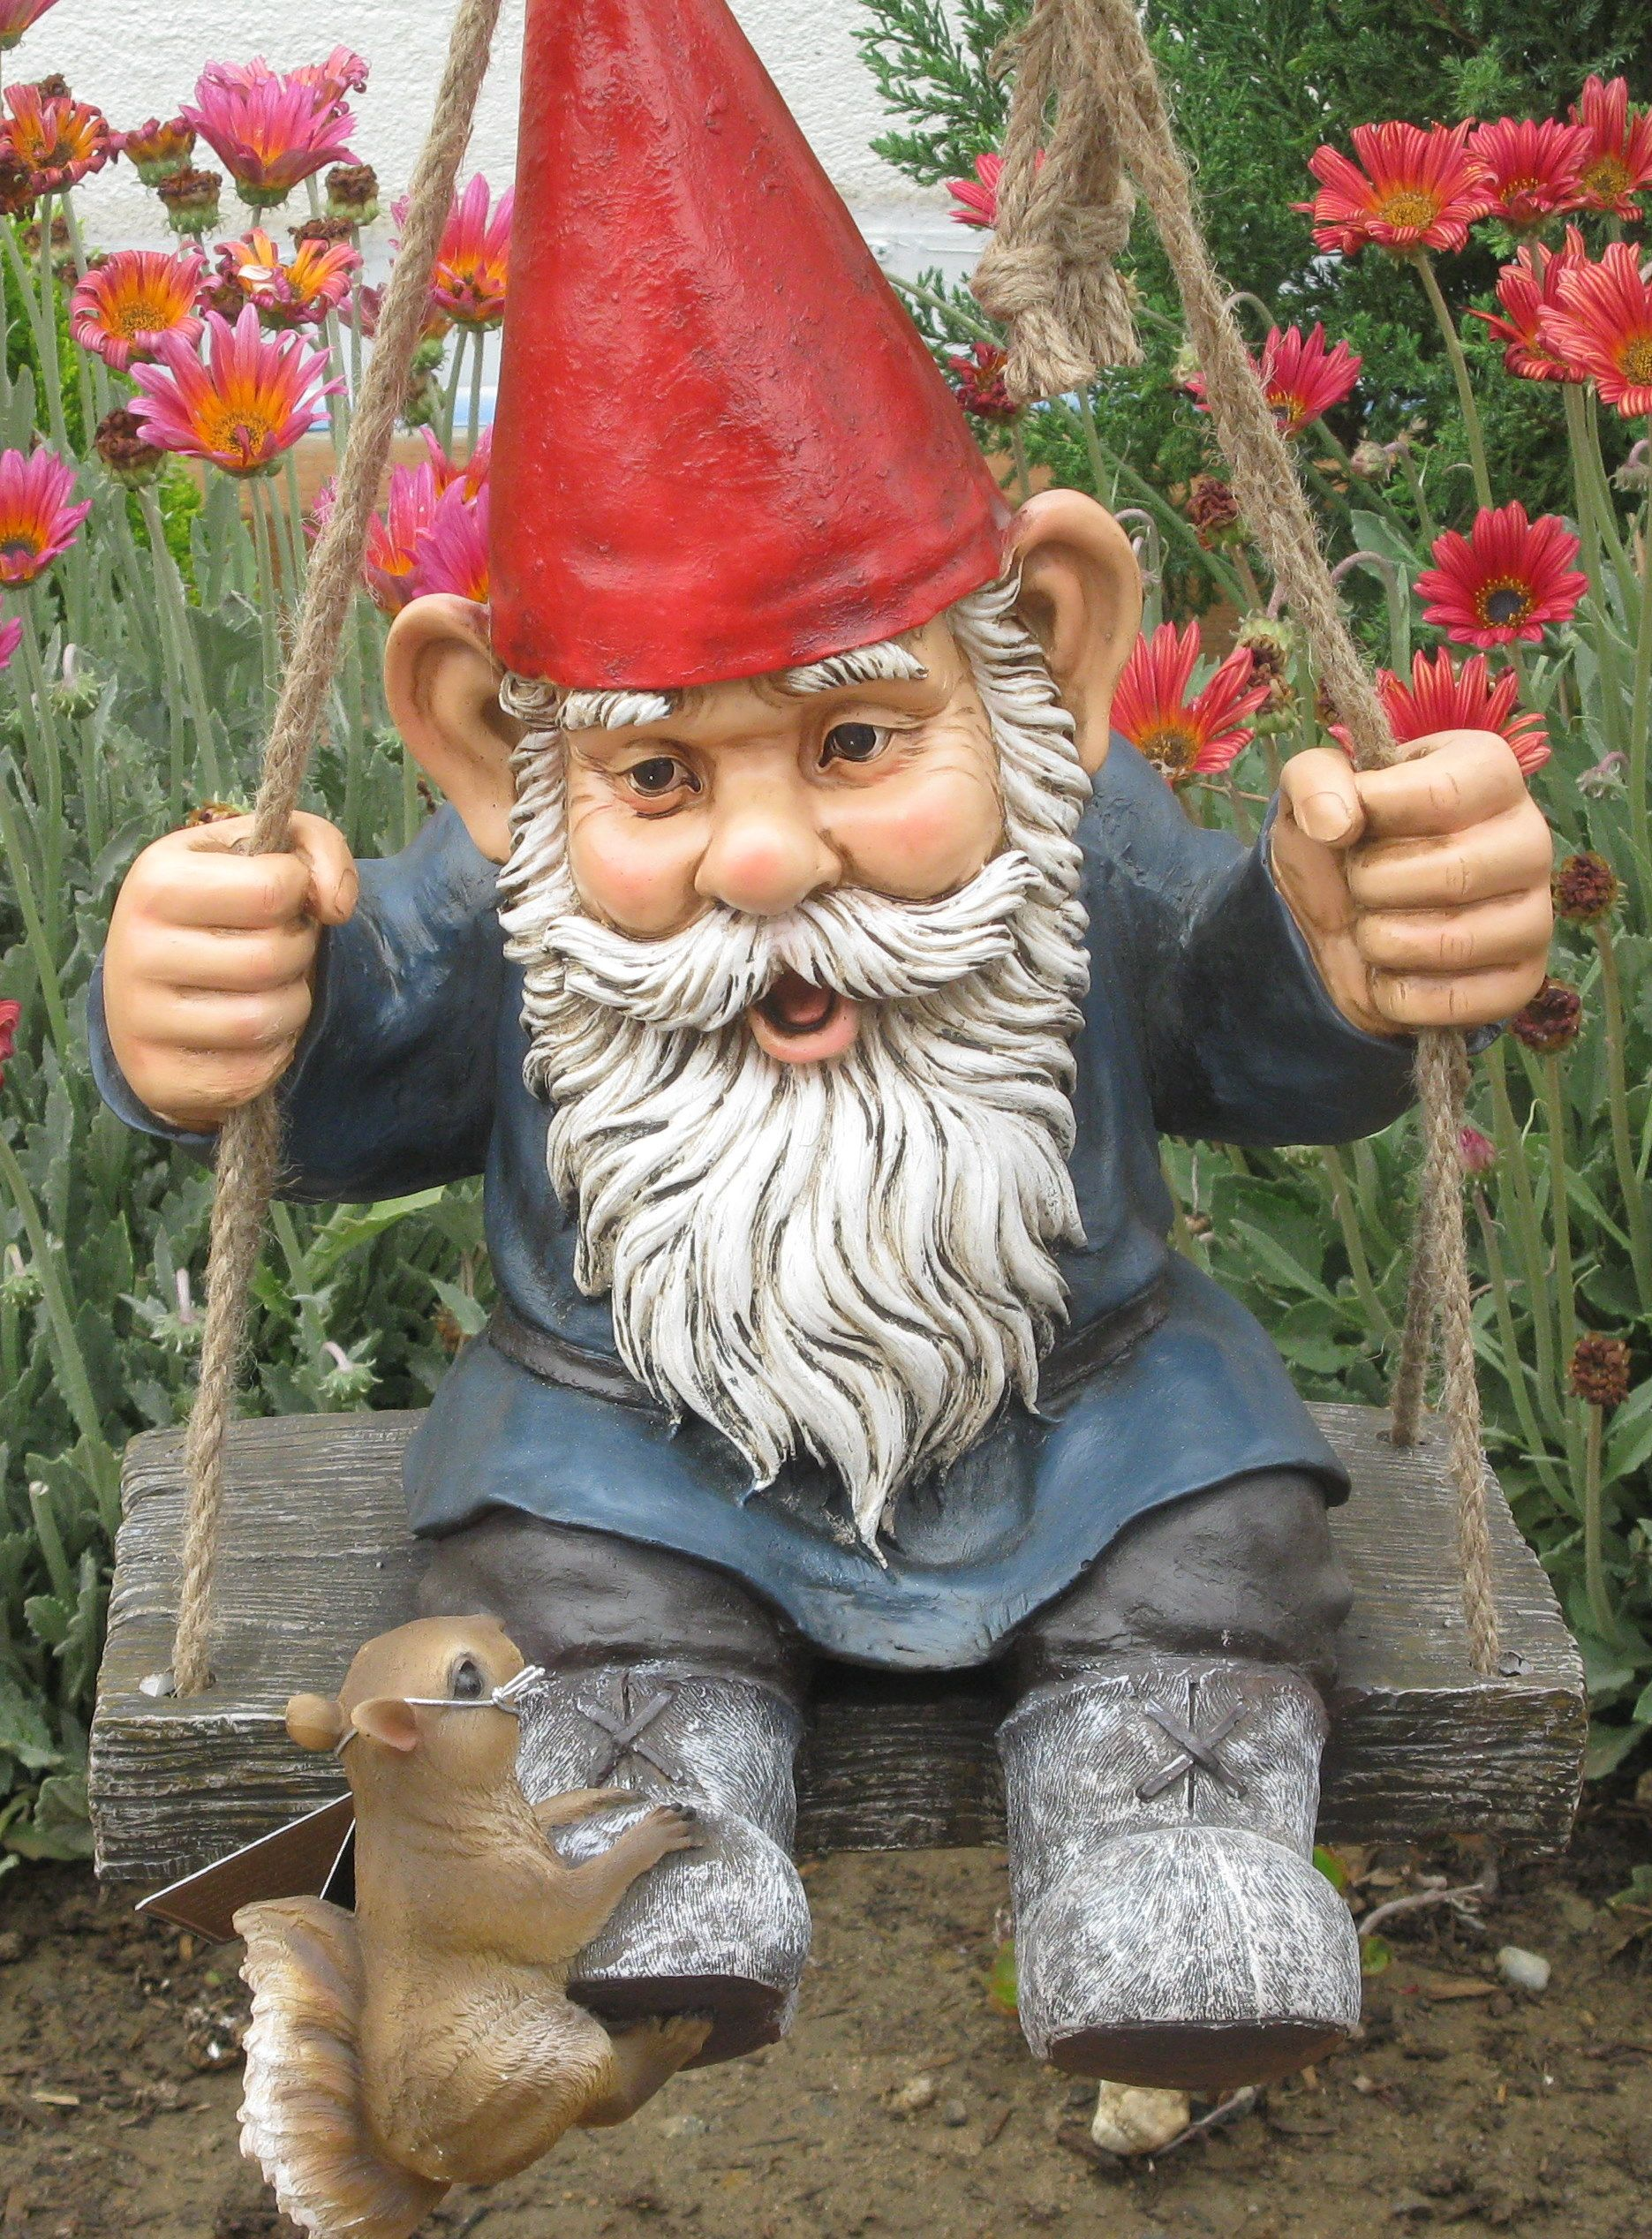 Gnome In Garden: Pin By Autumn Griggs On GNOME GARDEN